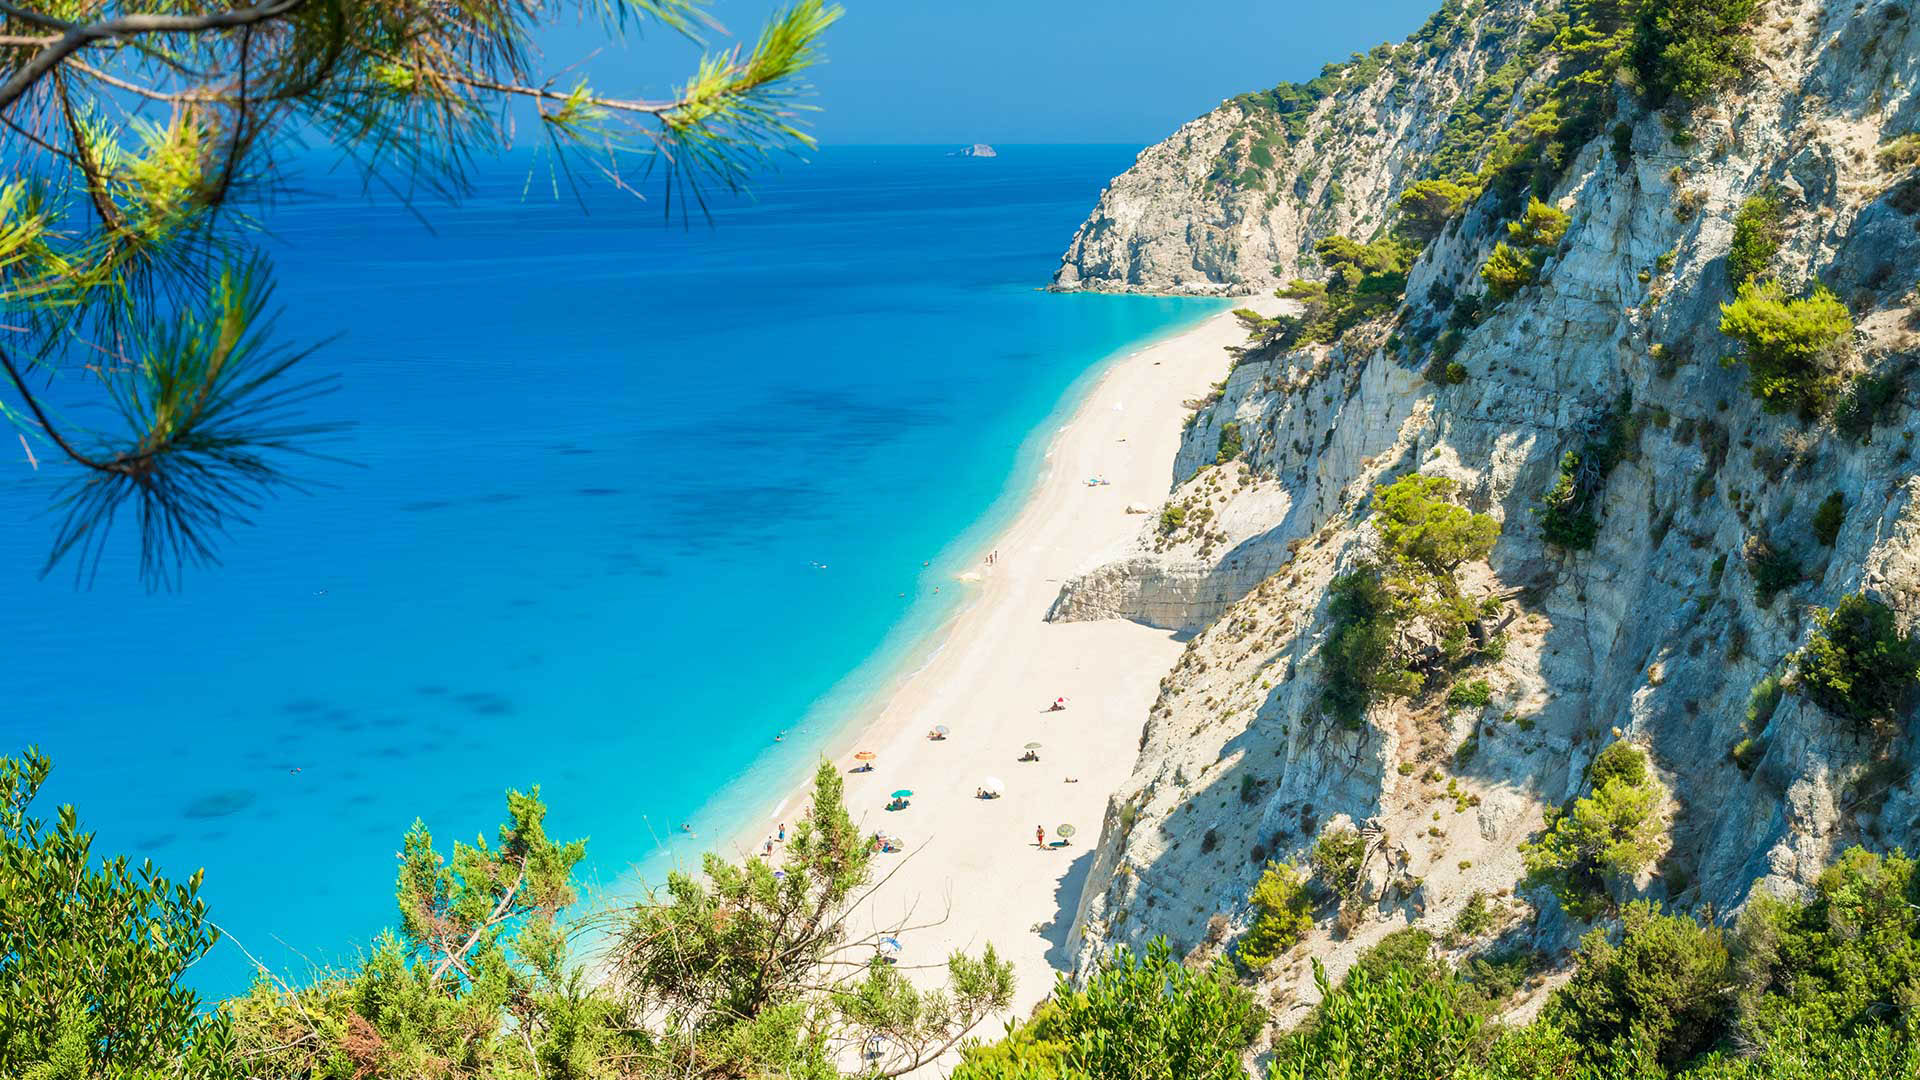 Sunrise Studios Lefkada Beaches